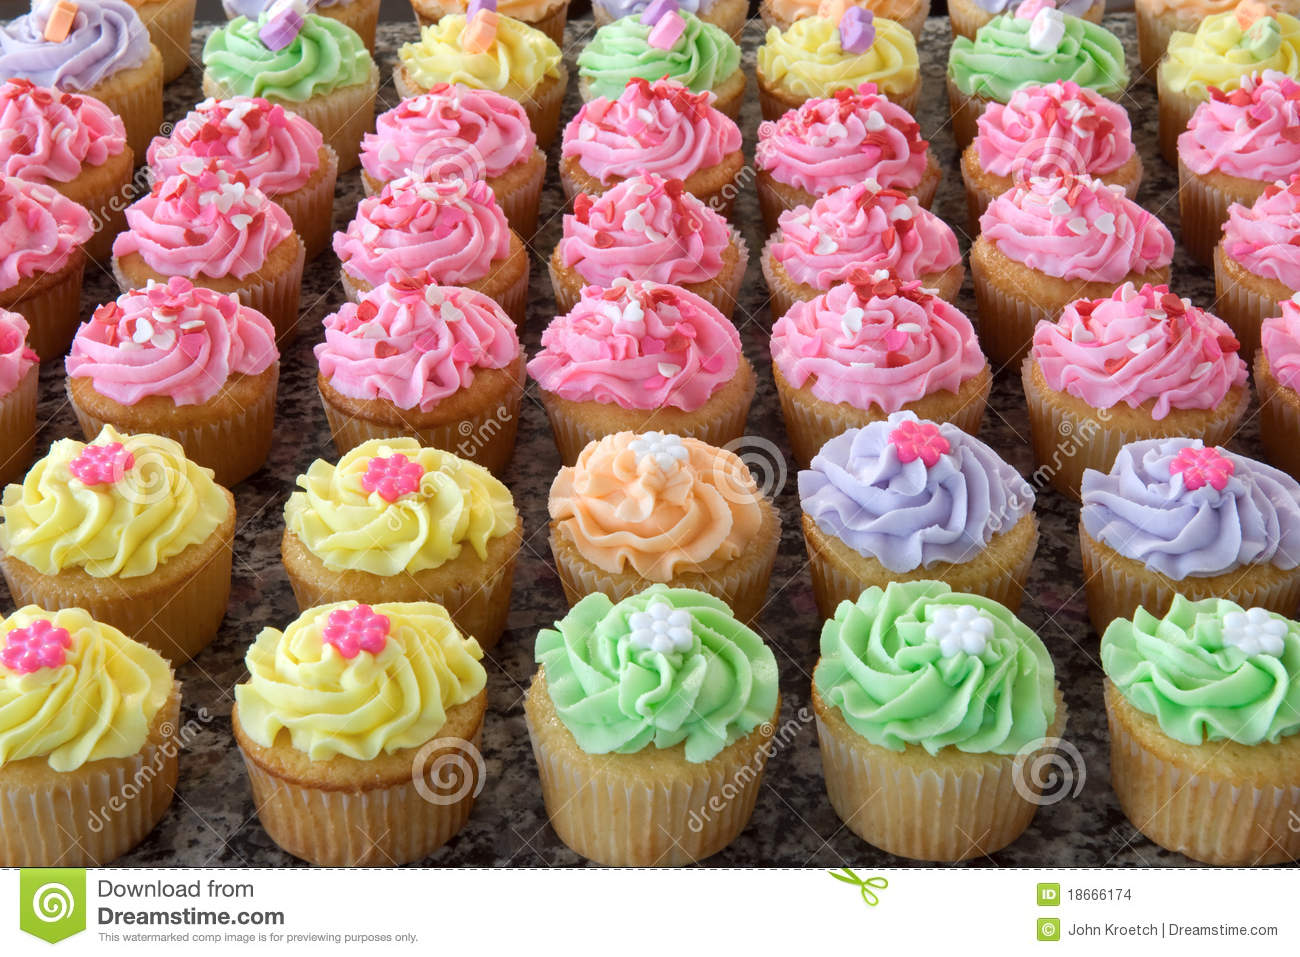 Rows of Pastel-Colored Cupcakes